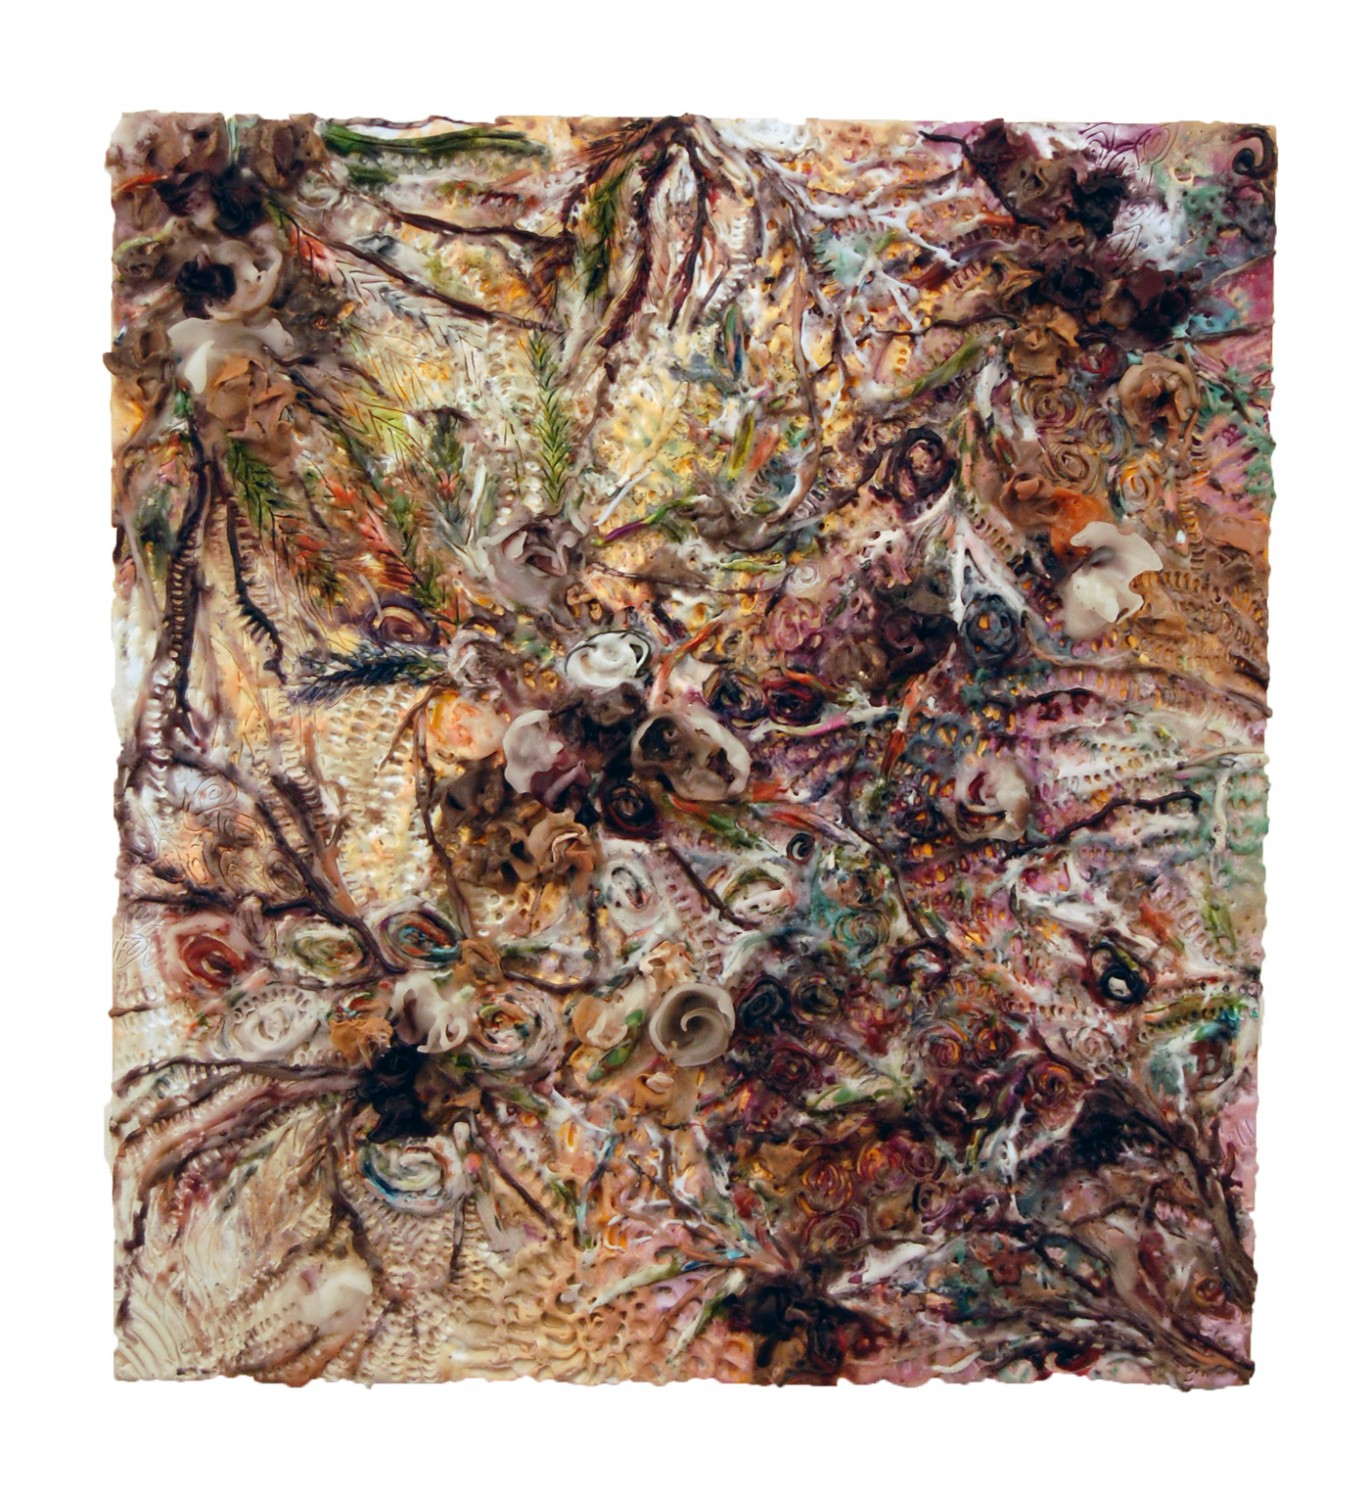 Gardeneden, 2012, encaustic on panel, 20 x 22 inches